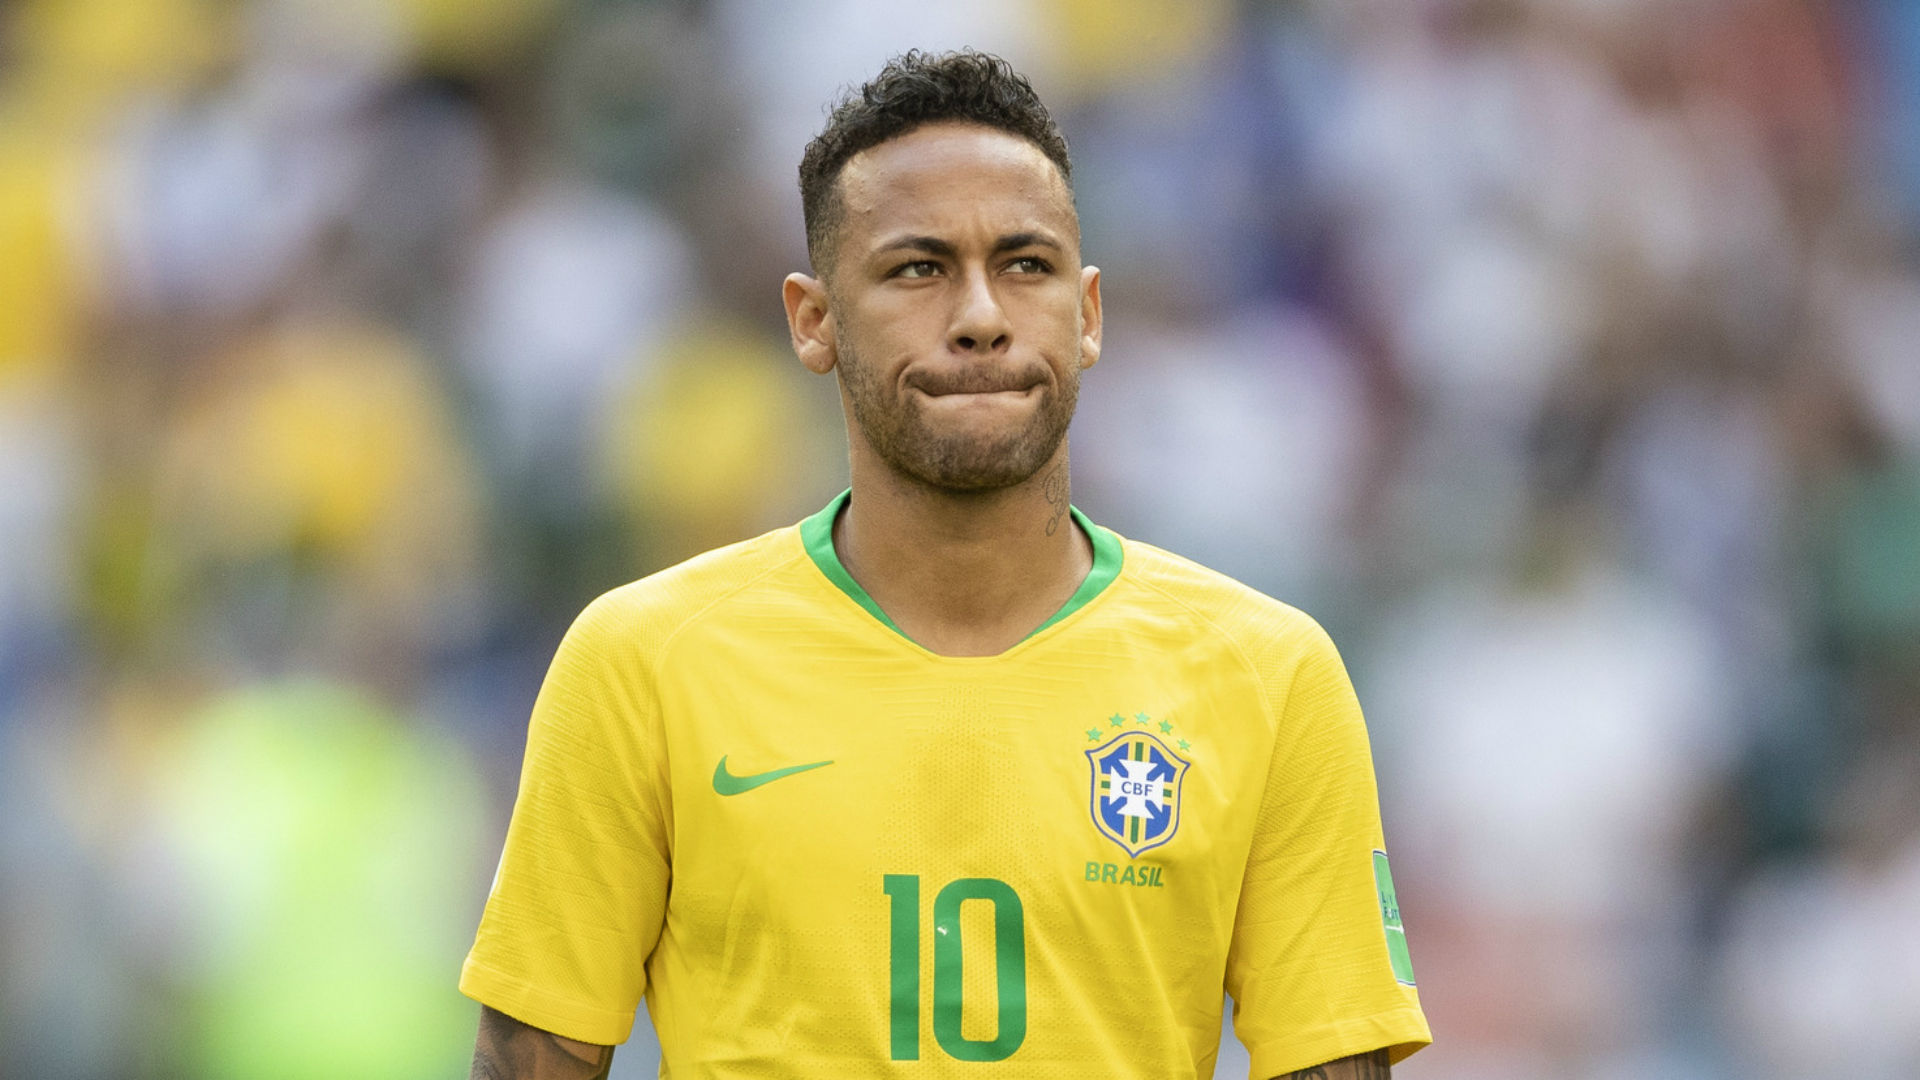 Neymar should drop injury act: Matthaeus